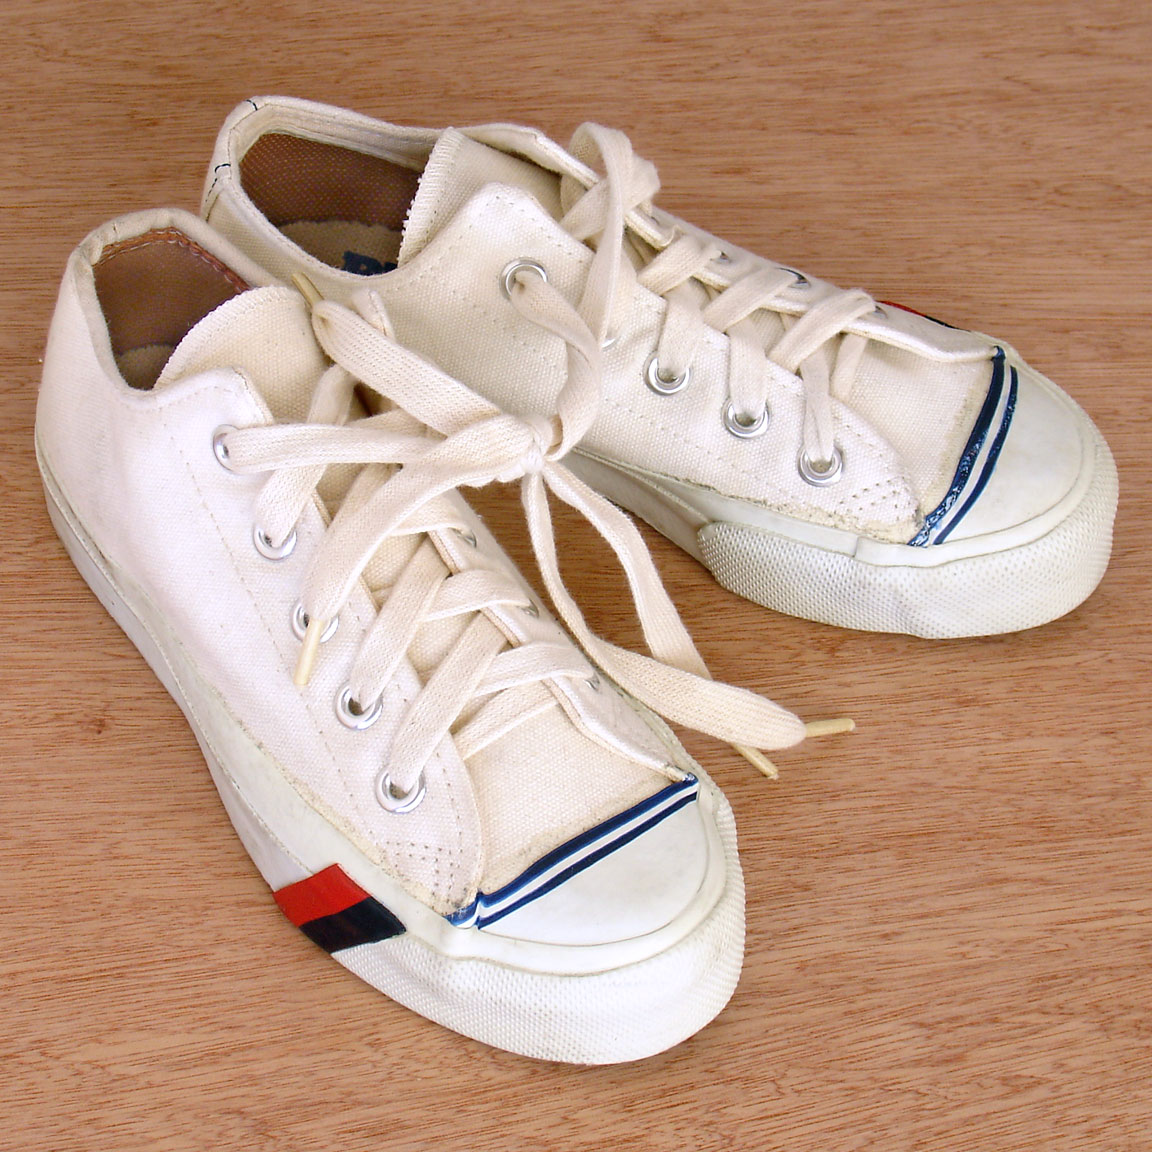 us keds tennis shoes